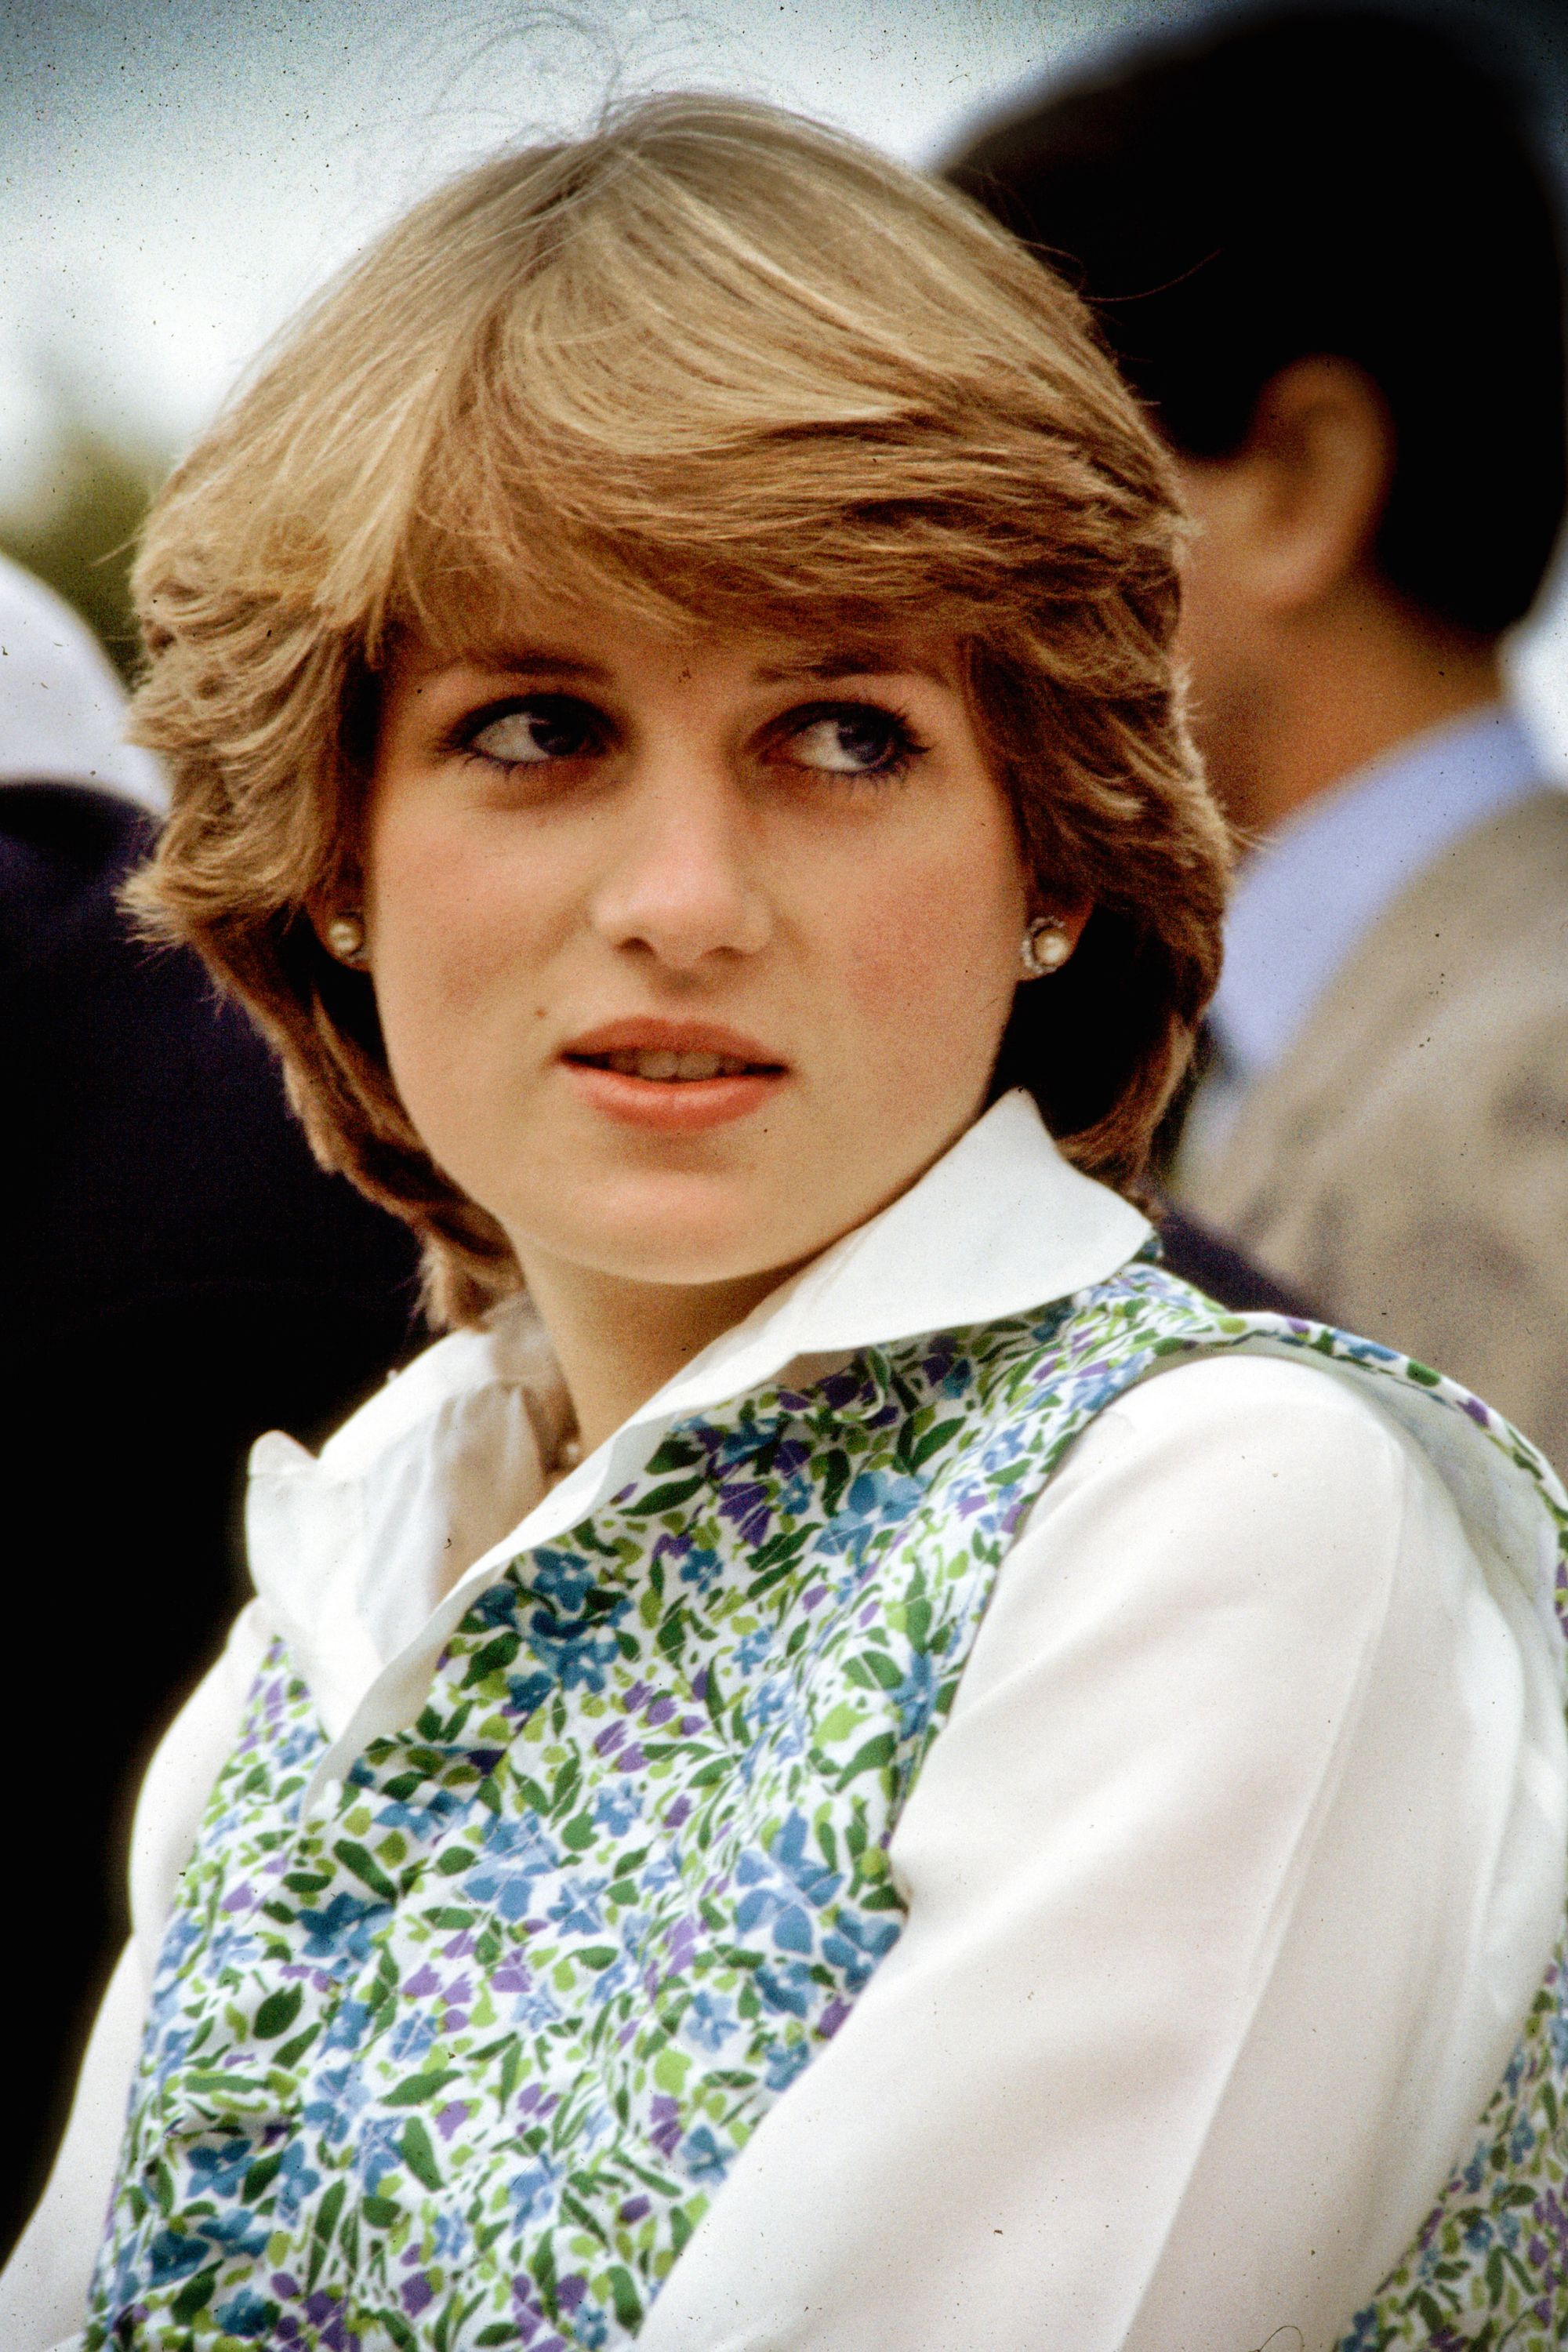 24 Photos Of Princess Diana Before Royal Life   Lady Diana Spenceru0027s  Childhood